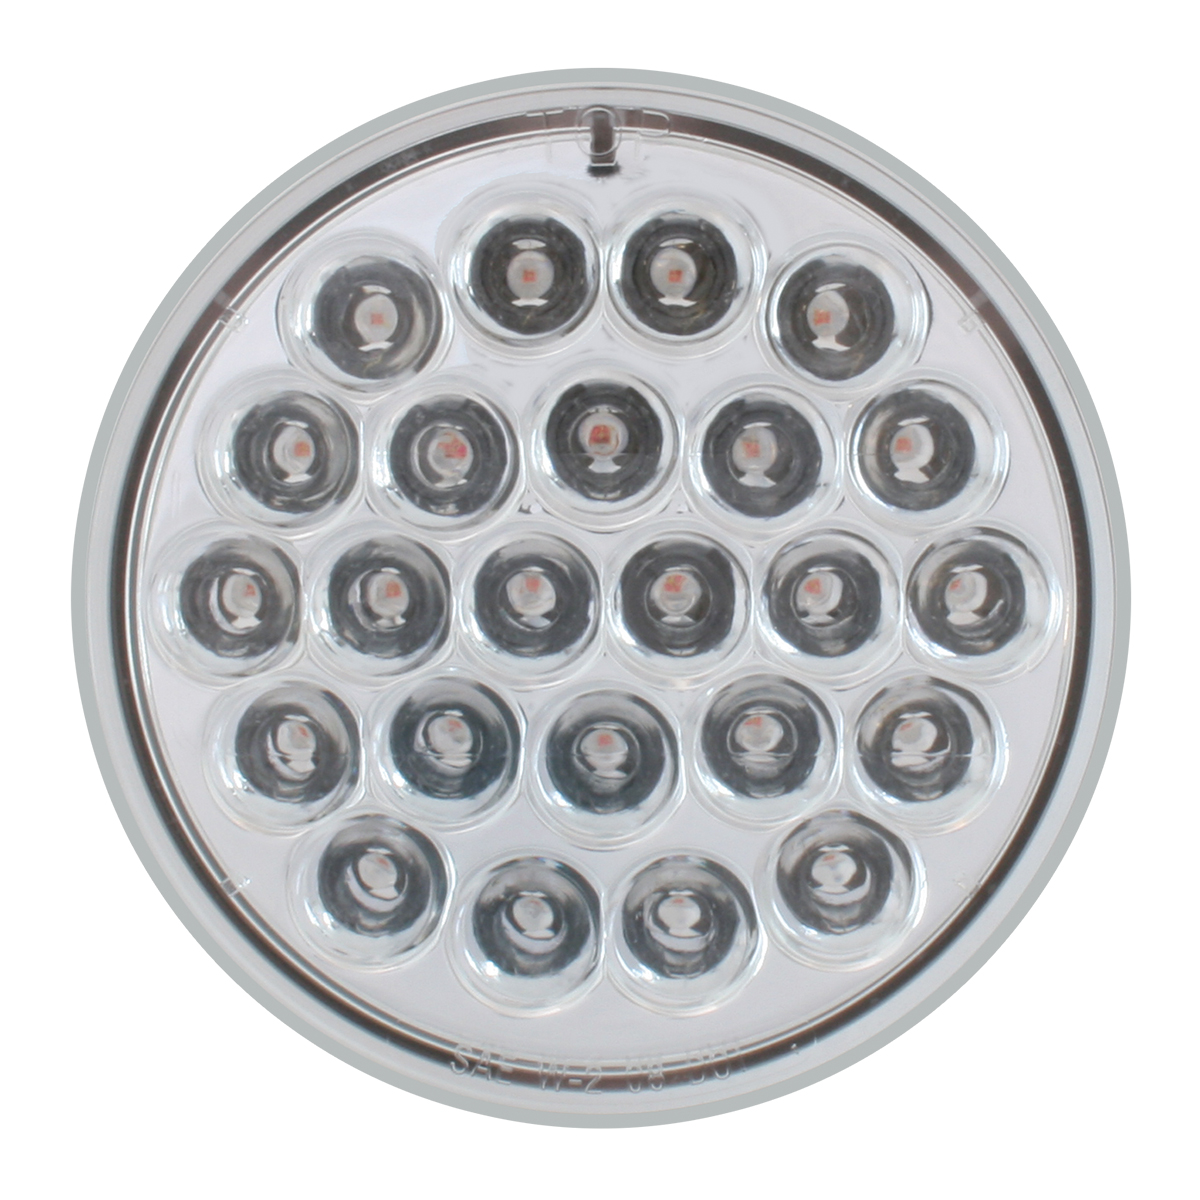 "4"" Round Synchronous/Alternating Pearl LED Strobe Light in Clear Lens"